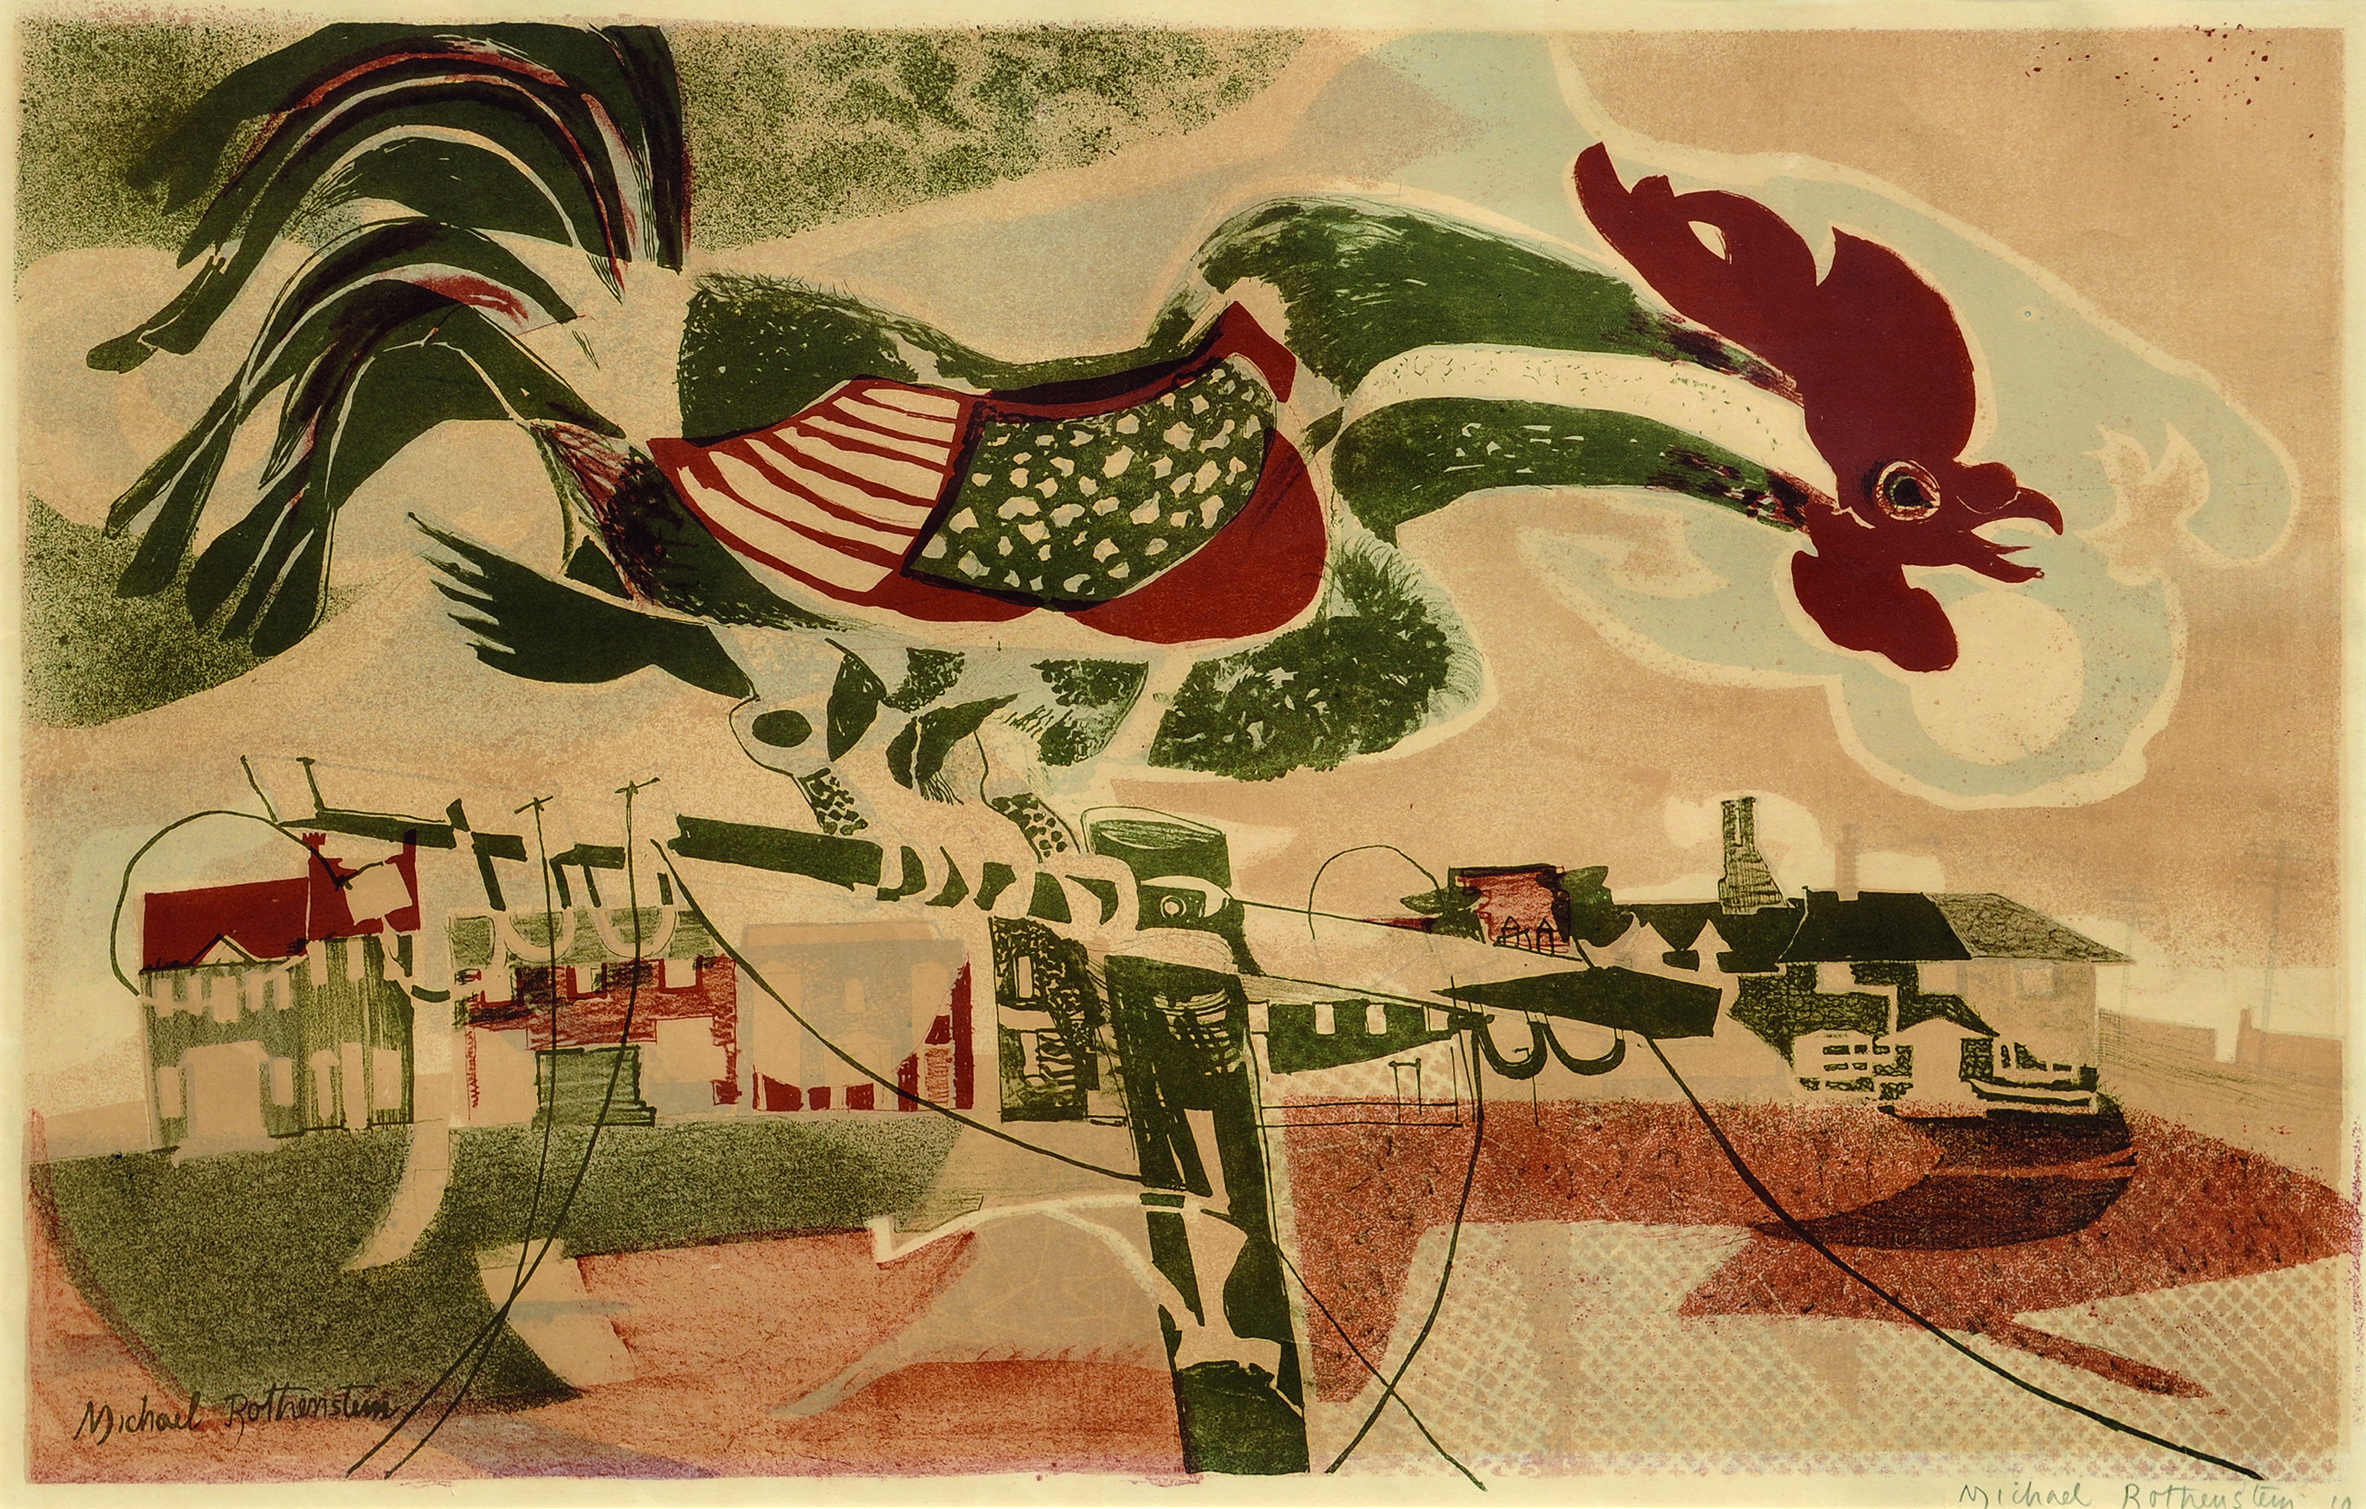 Michael Rothenstein( 1908 - 1993) ,  The Cockerel , Lithograph, 470mm x 730mm, 50 (not all printed)